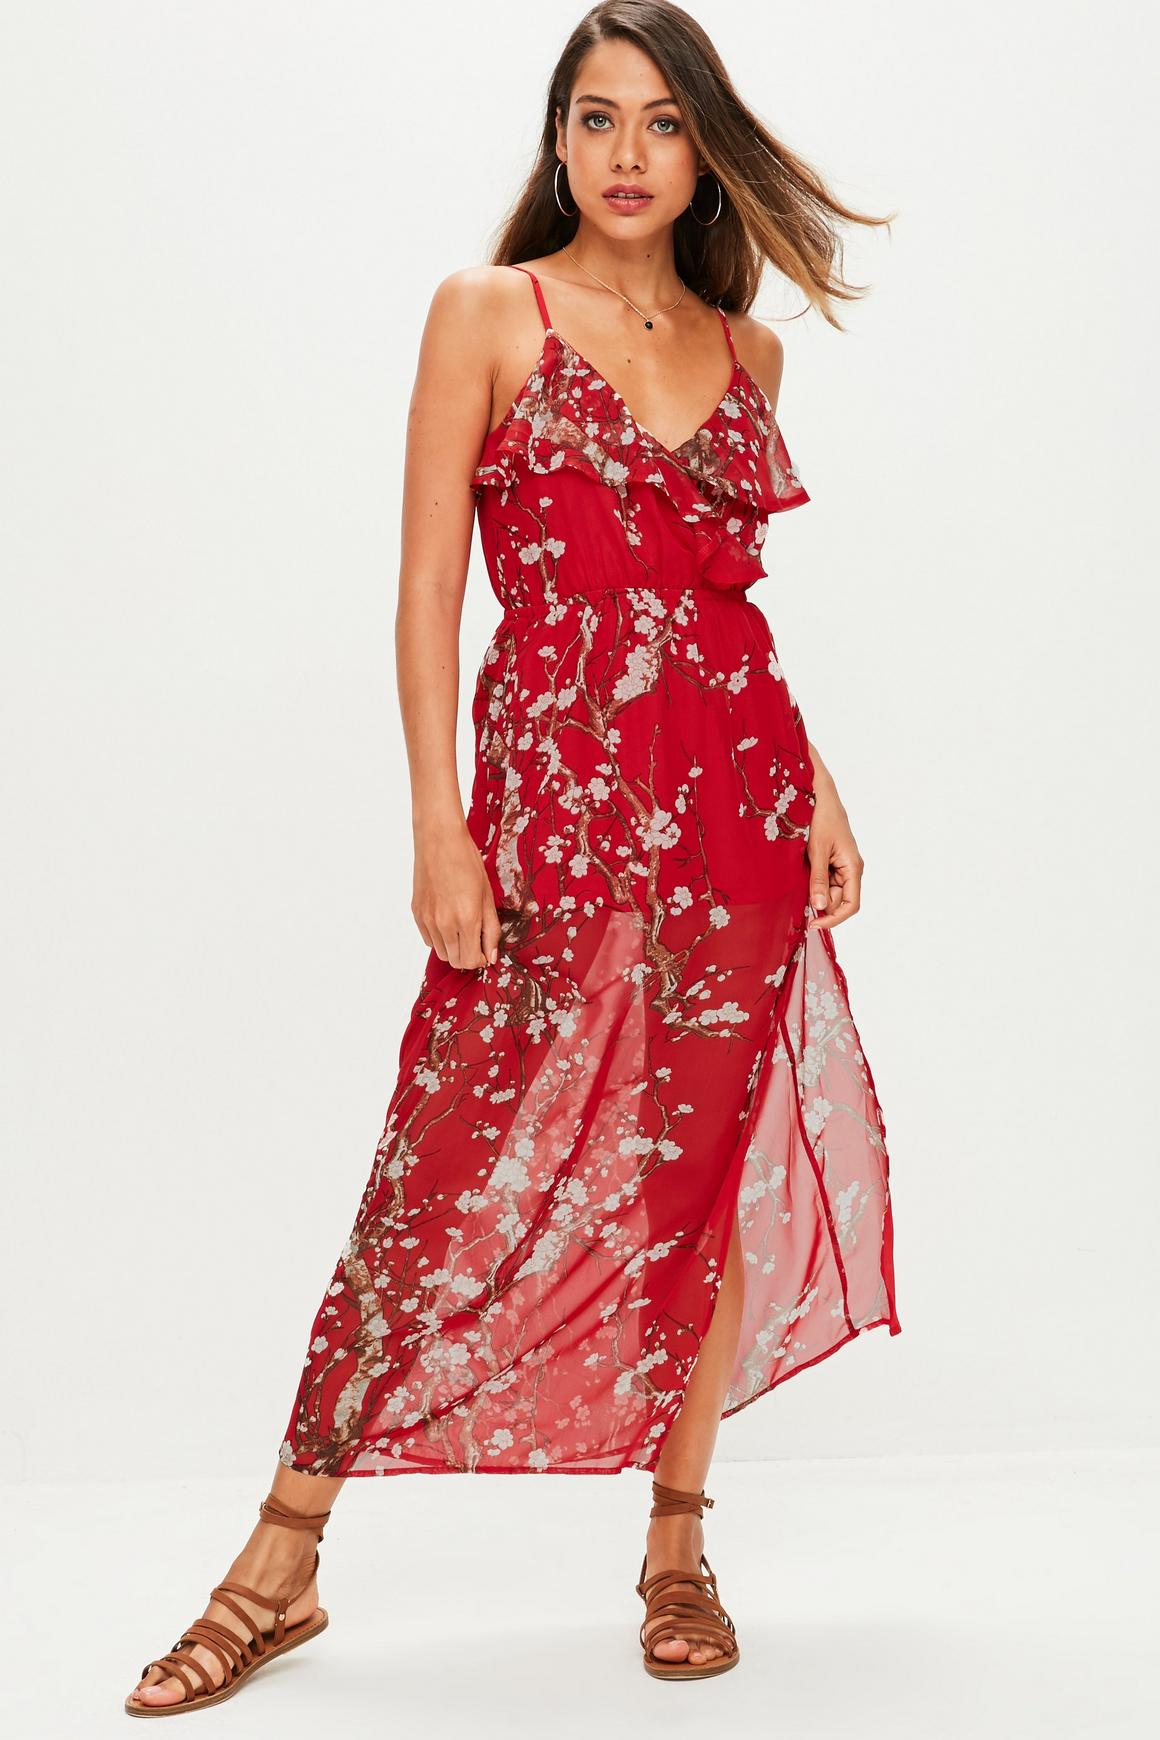 Petite Red Floral Frill Maxi Dress   Missguided